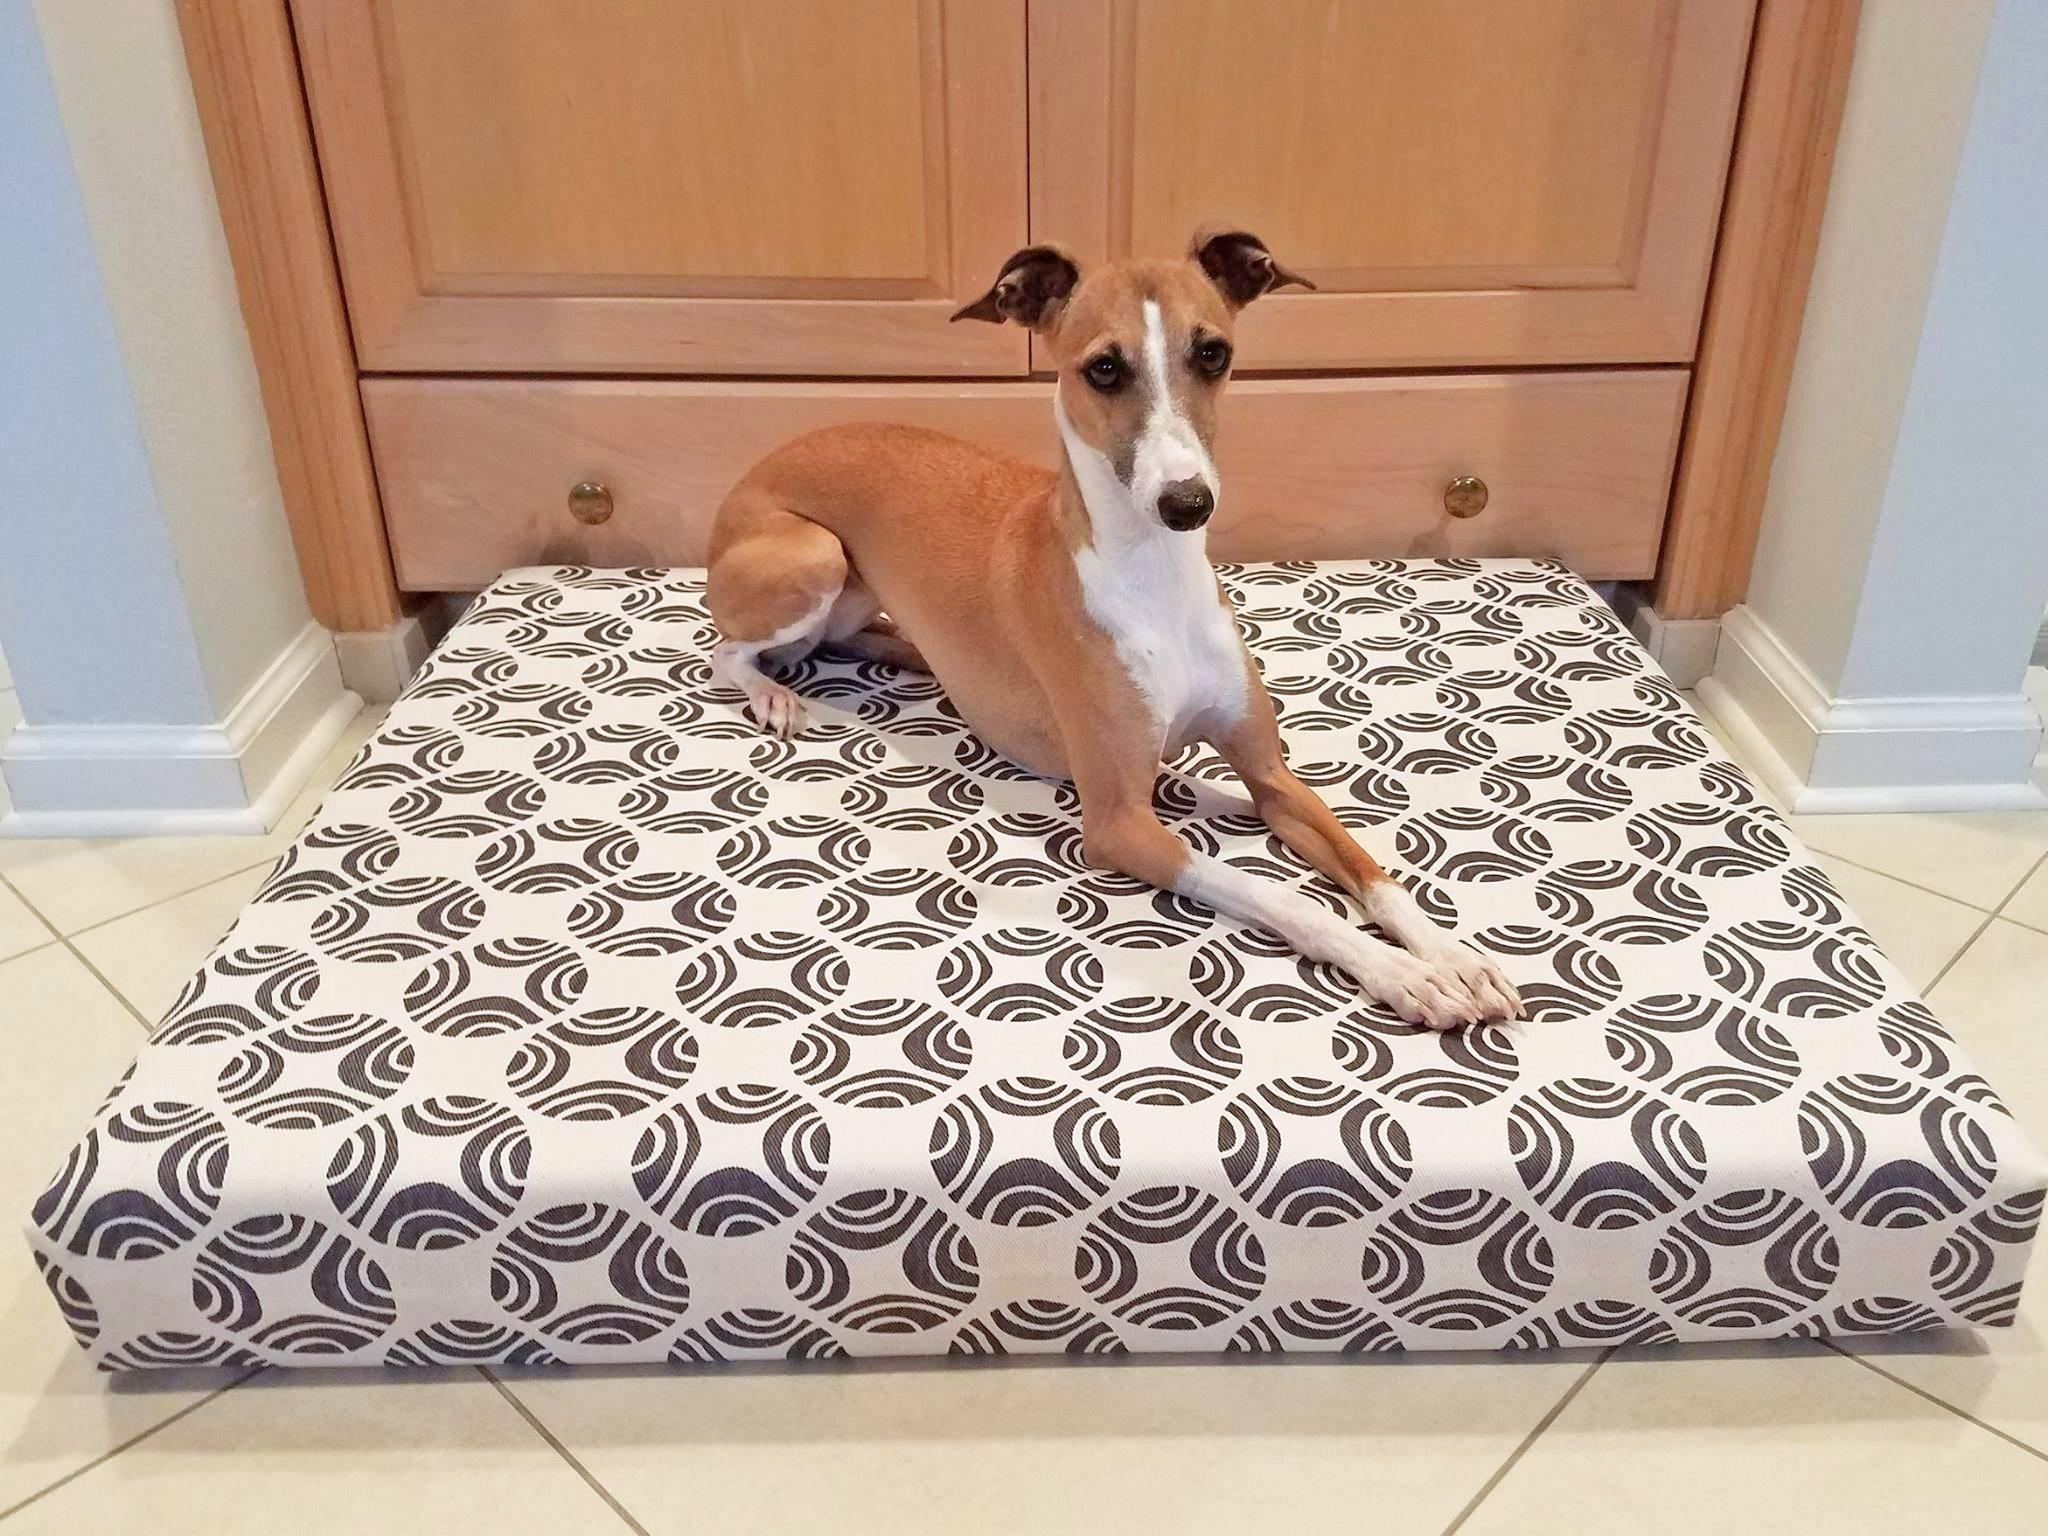 greyhound dog laying on organic orthopedic dog bed in white and brown picasso print